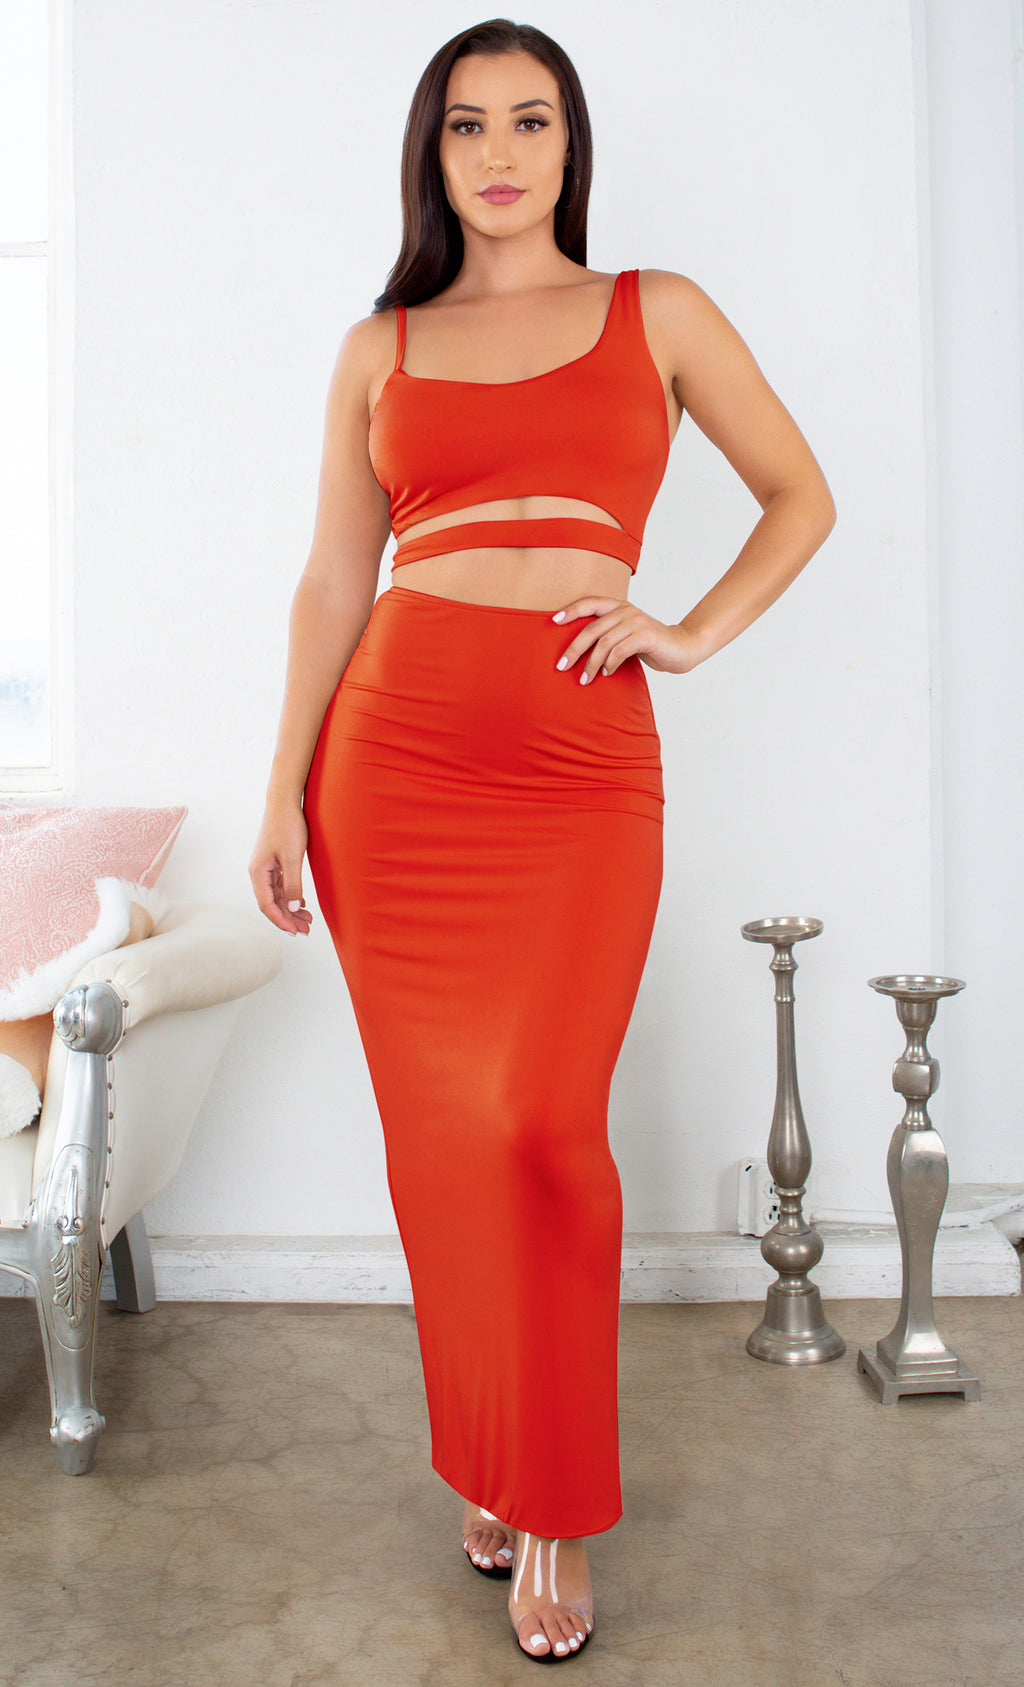 Missing Miami Orange Sleeveless Spaghetti Strap Scoop Neckline Cut Out Waist Bodycon Maxi Dress